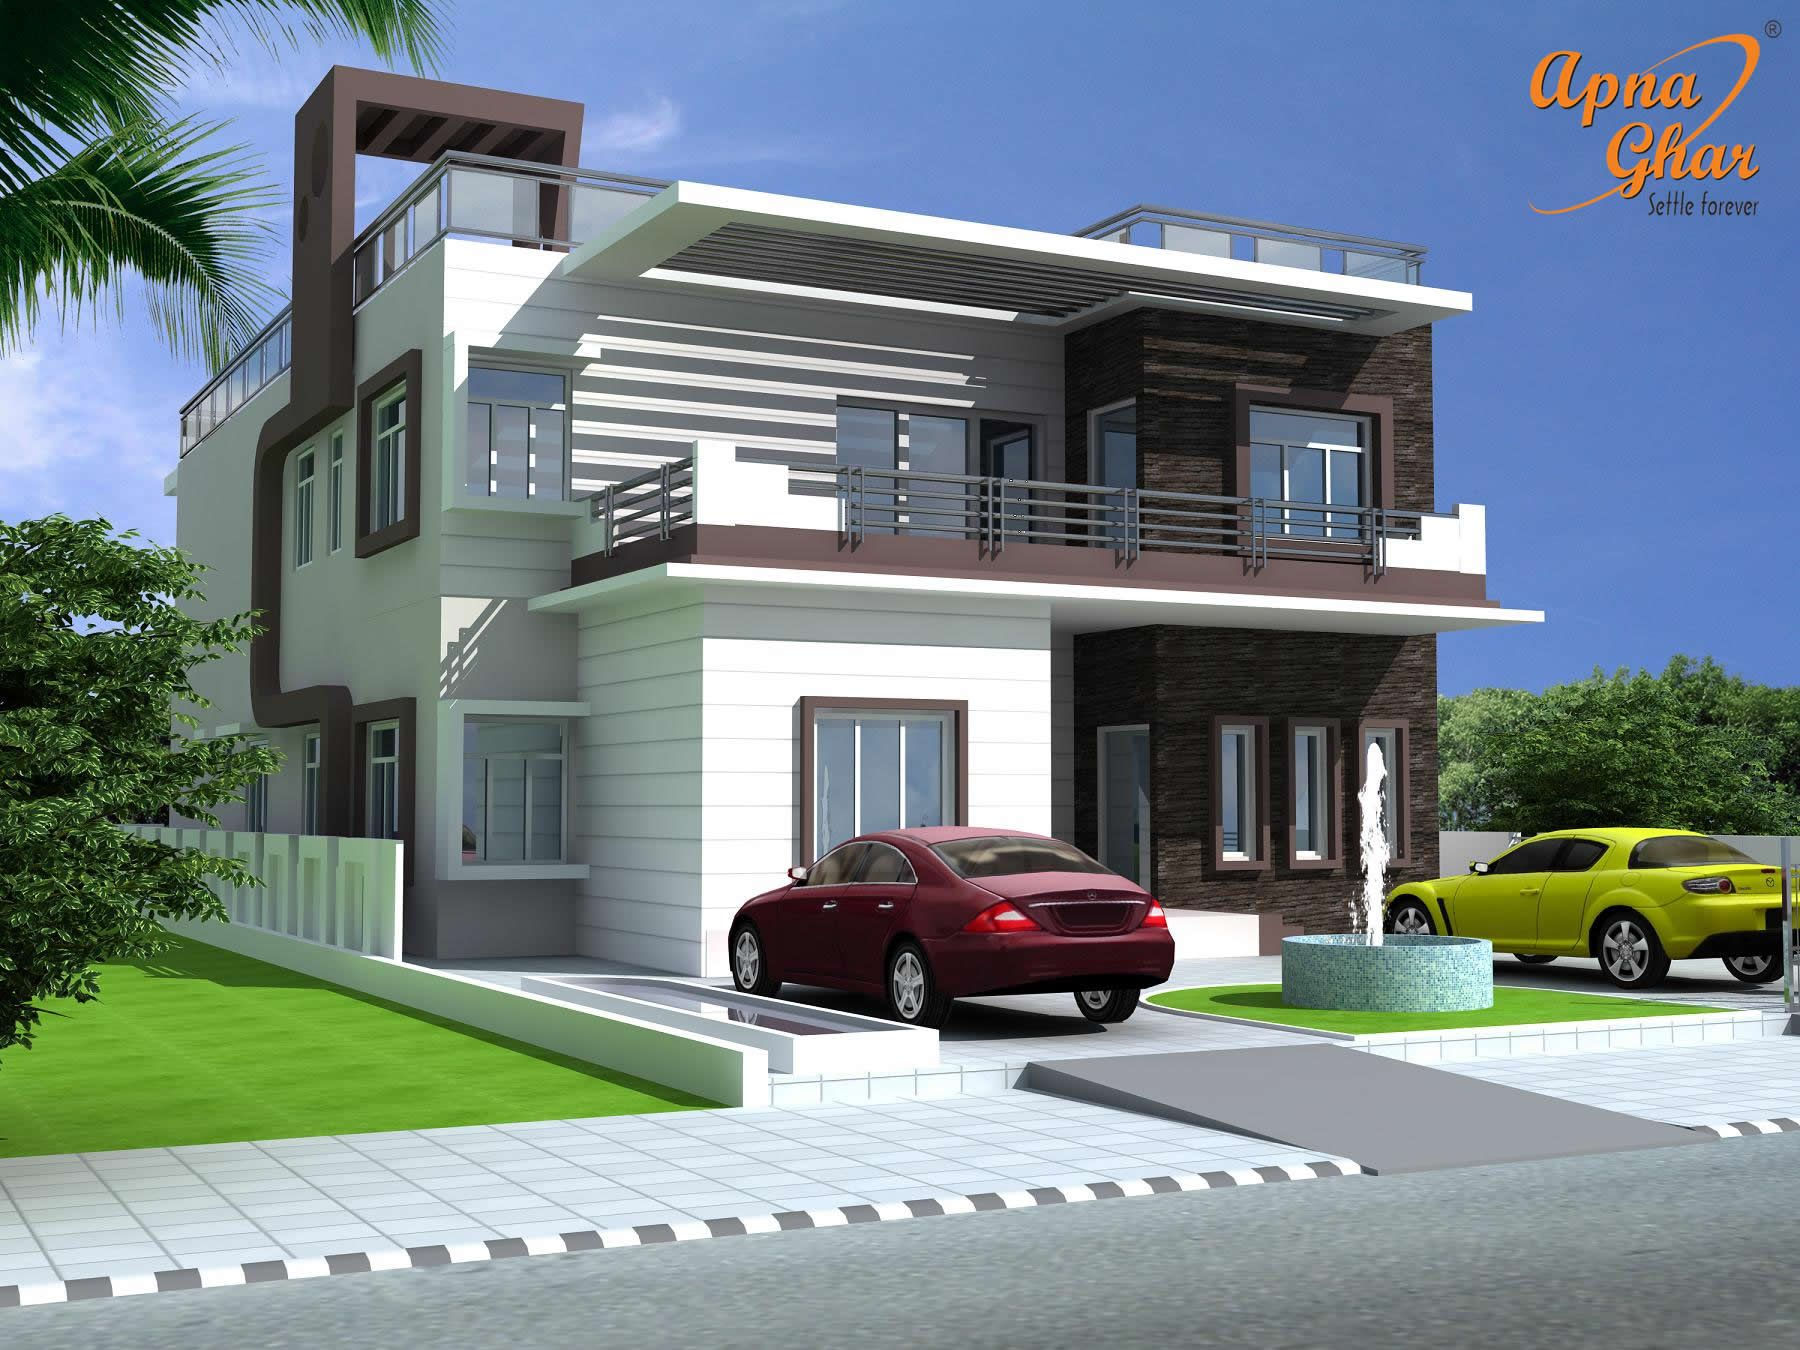 6 bedrooms duplex house design in 390m2 13m x 30m click for Front view of duplex house in india